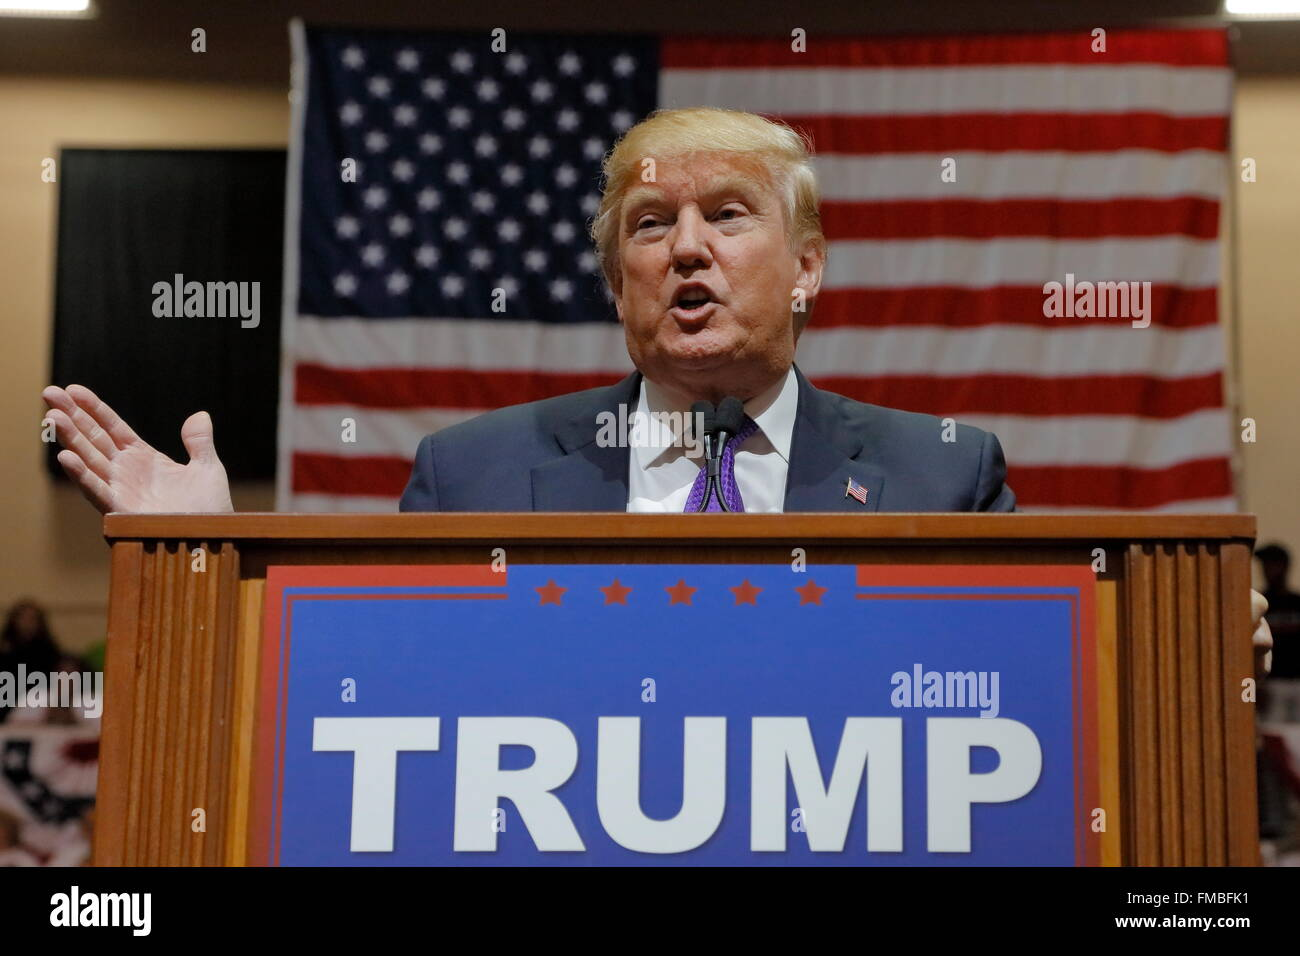 Republican presidential candidate Donald Trump campaign rally at the South Point Arena & Casino in Las Vegas - Stock Image